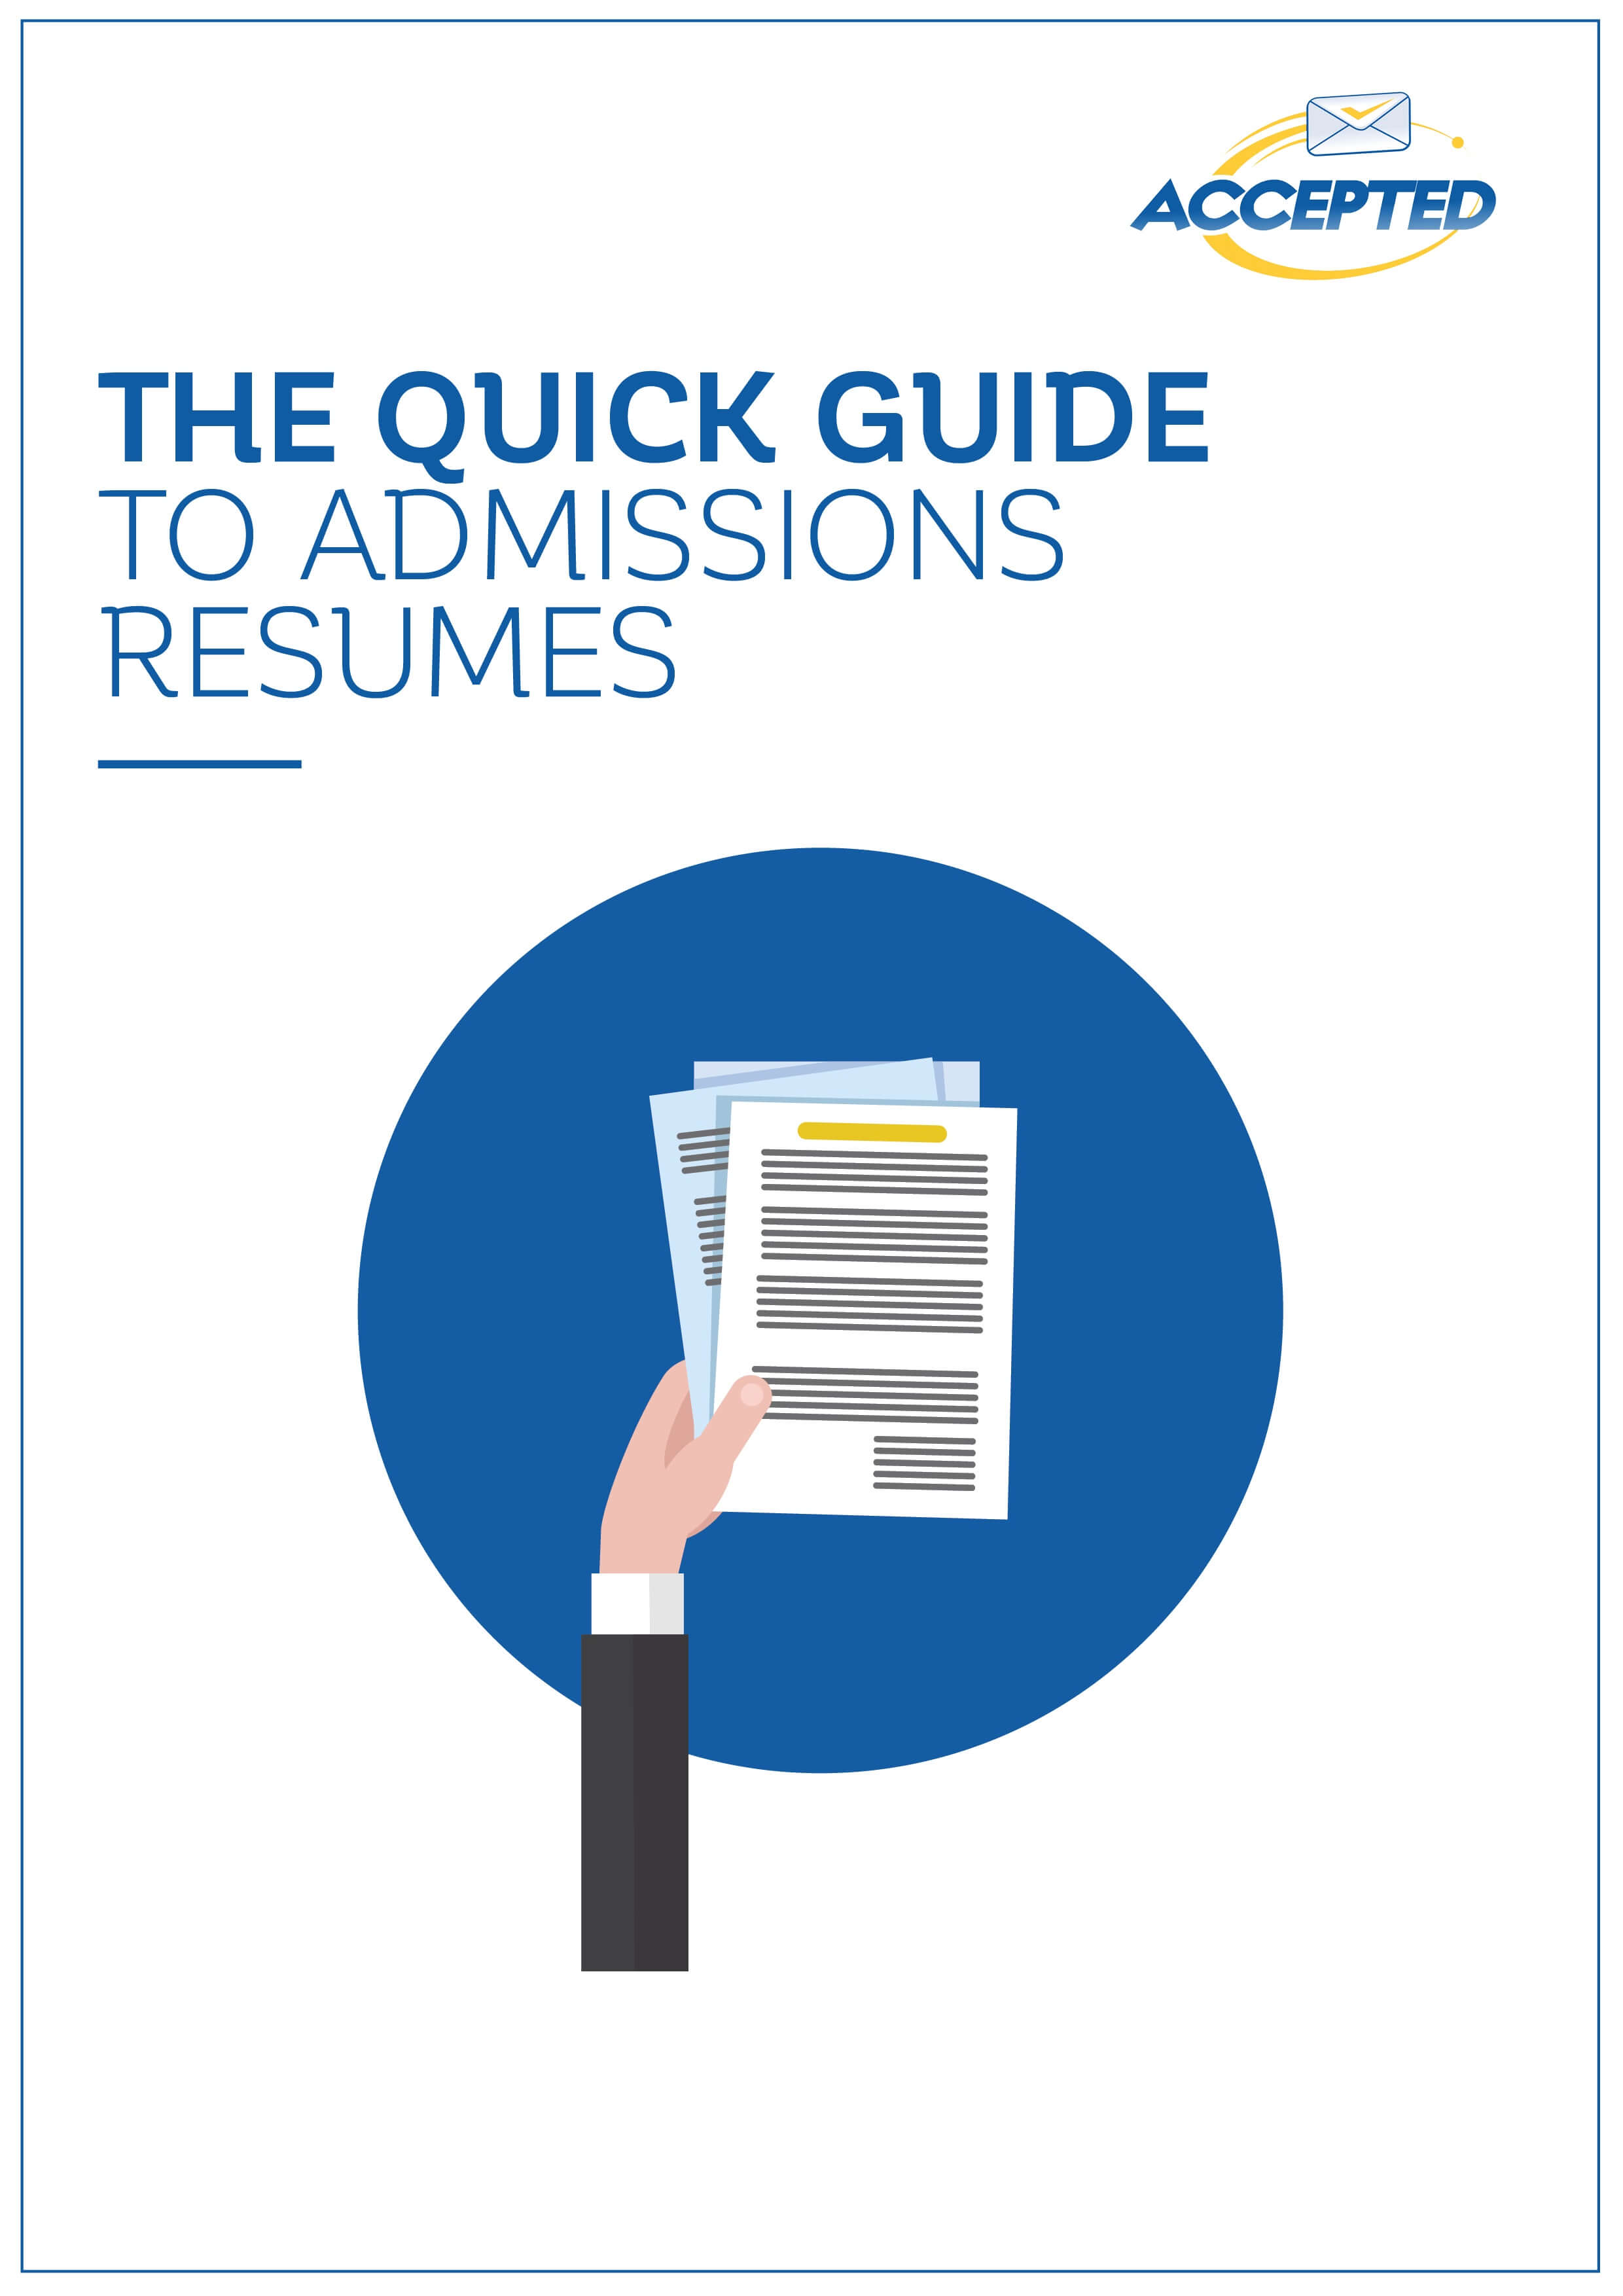 Quick Guide to Admissions Resumes